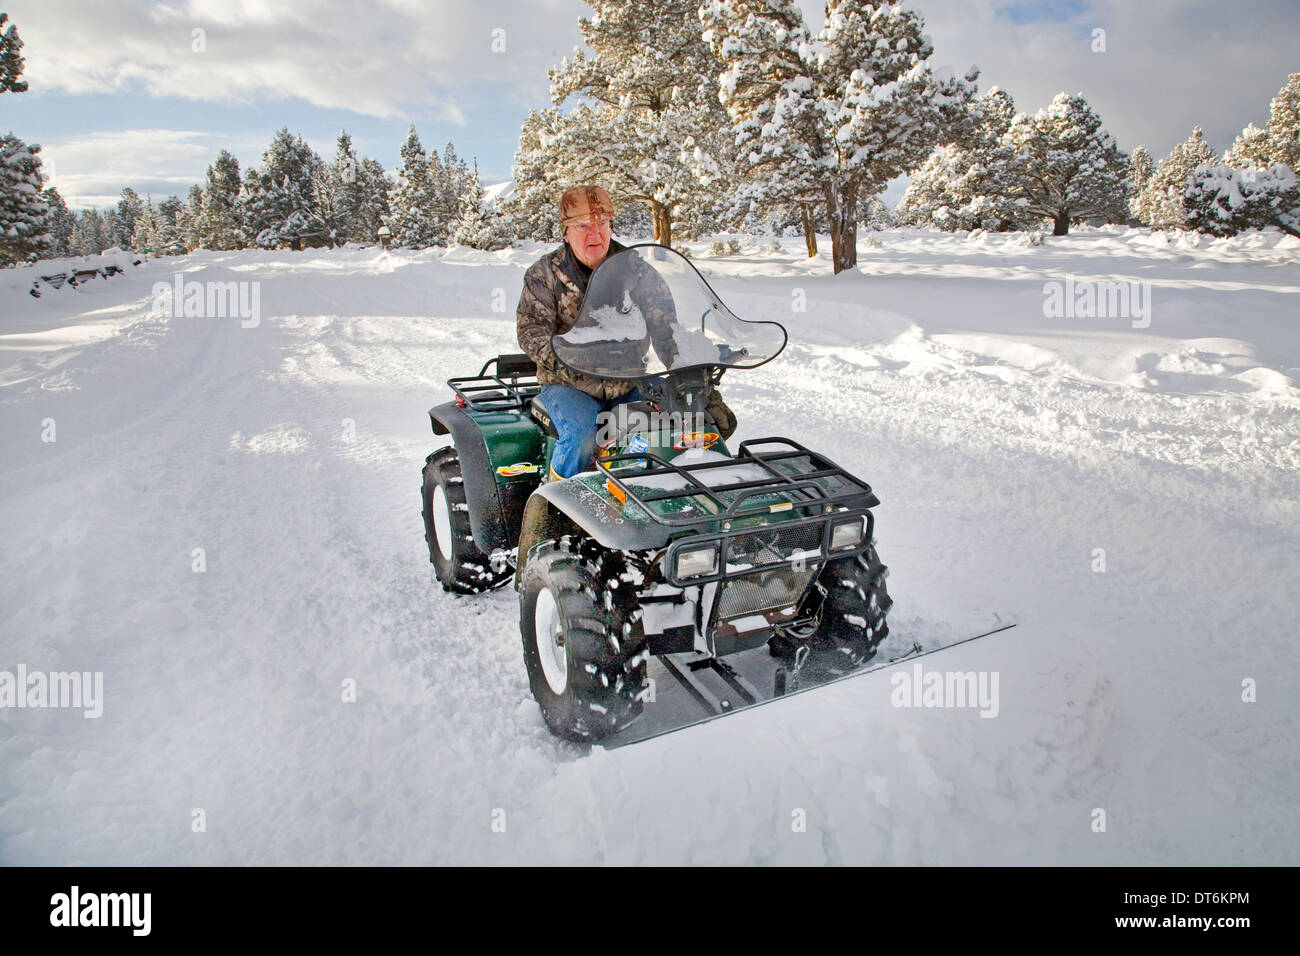 A senior citizen plows snow with an ATV, all terrain vehicle, after a major snow storm in central Oregon. - Stock Image